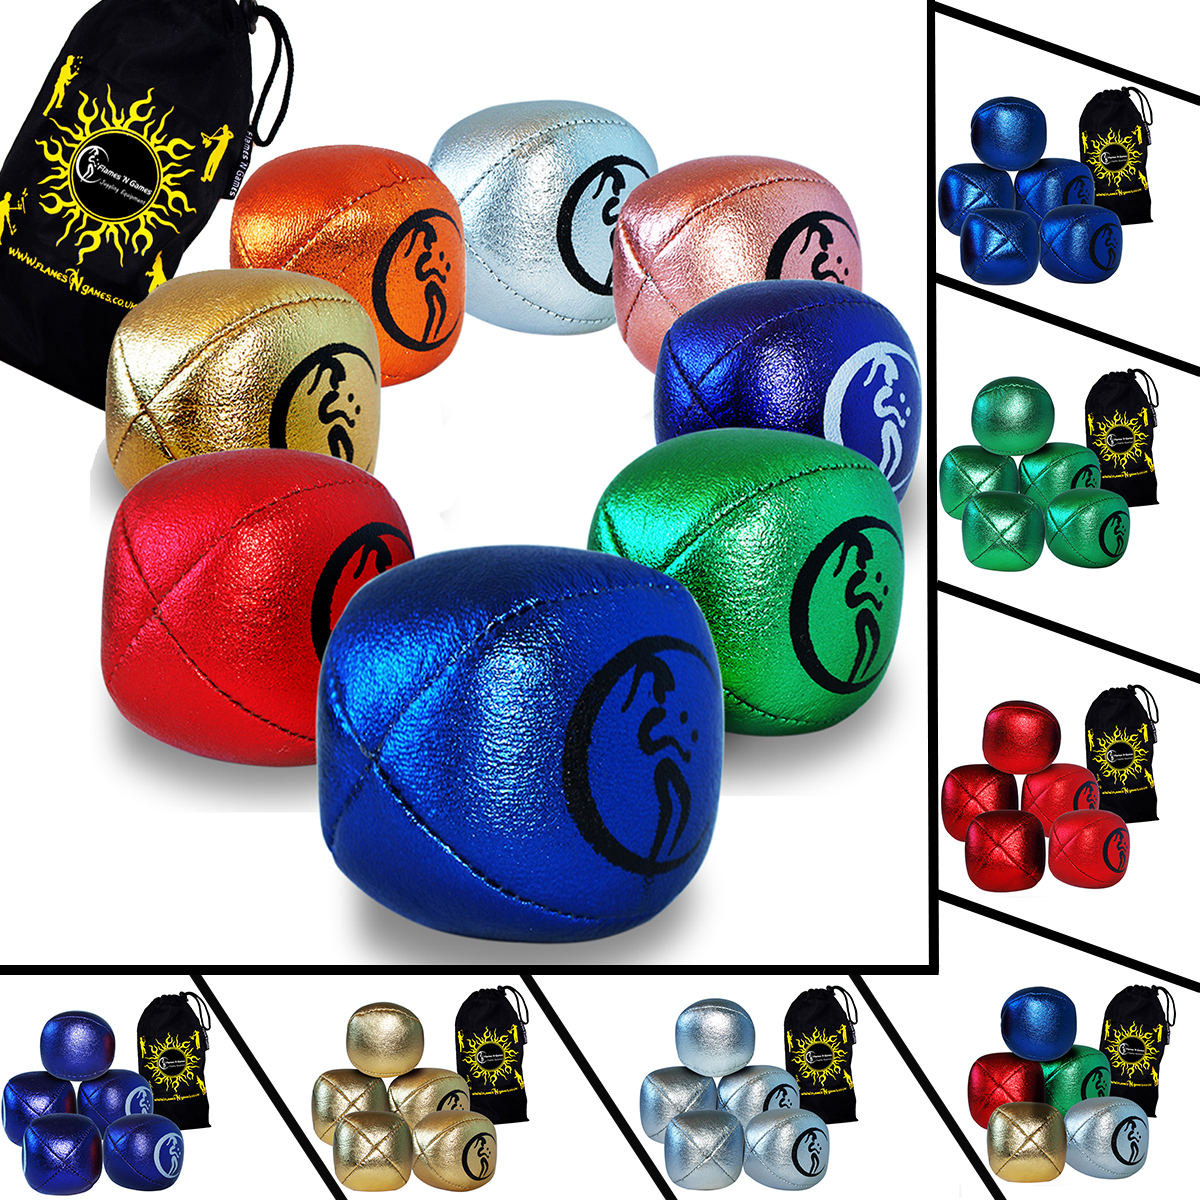 Pro Juggling Balls for all abilities! Bag Set of 5 Flames N Games 4 Colour Leather Juggling Balls